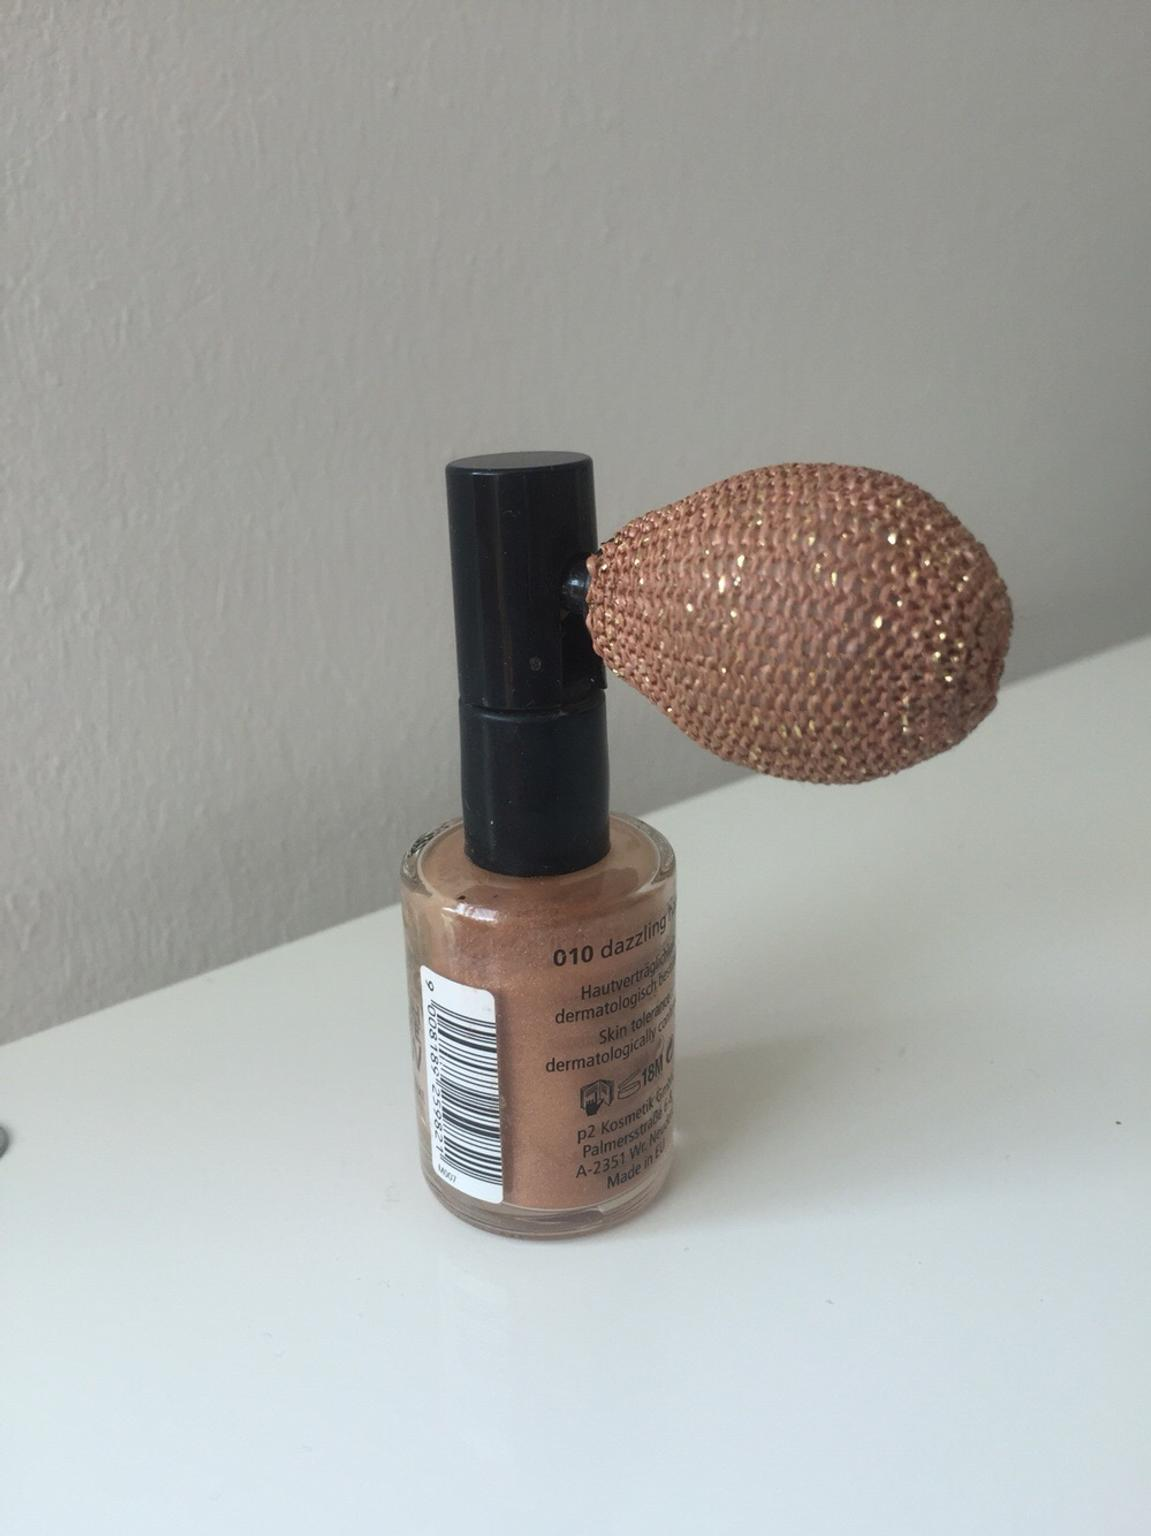 P2 Golden Powder Dust in 52078 Aachen for €1.20 for sale